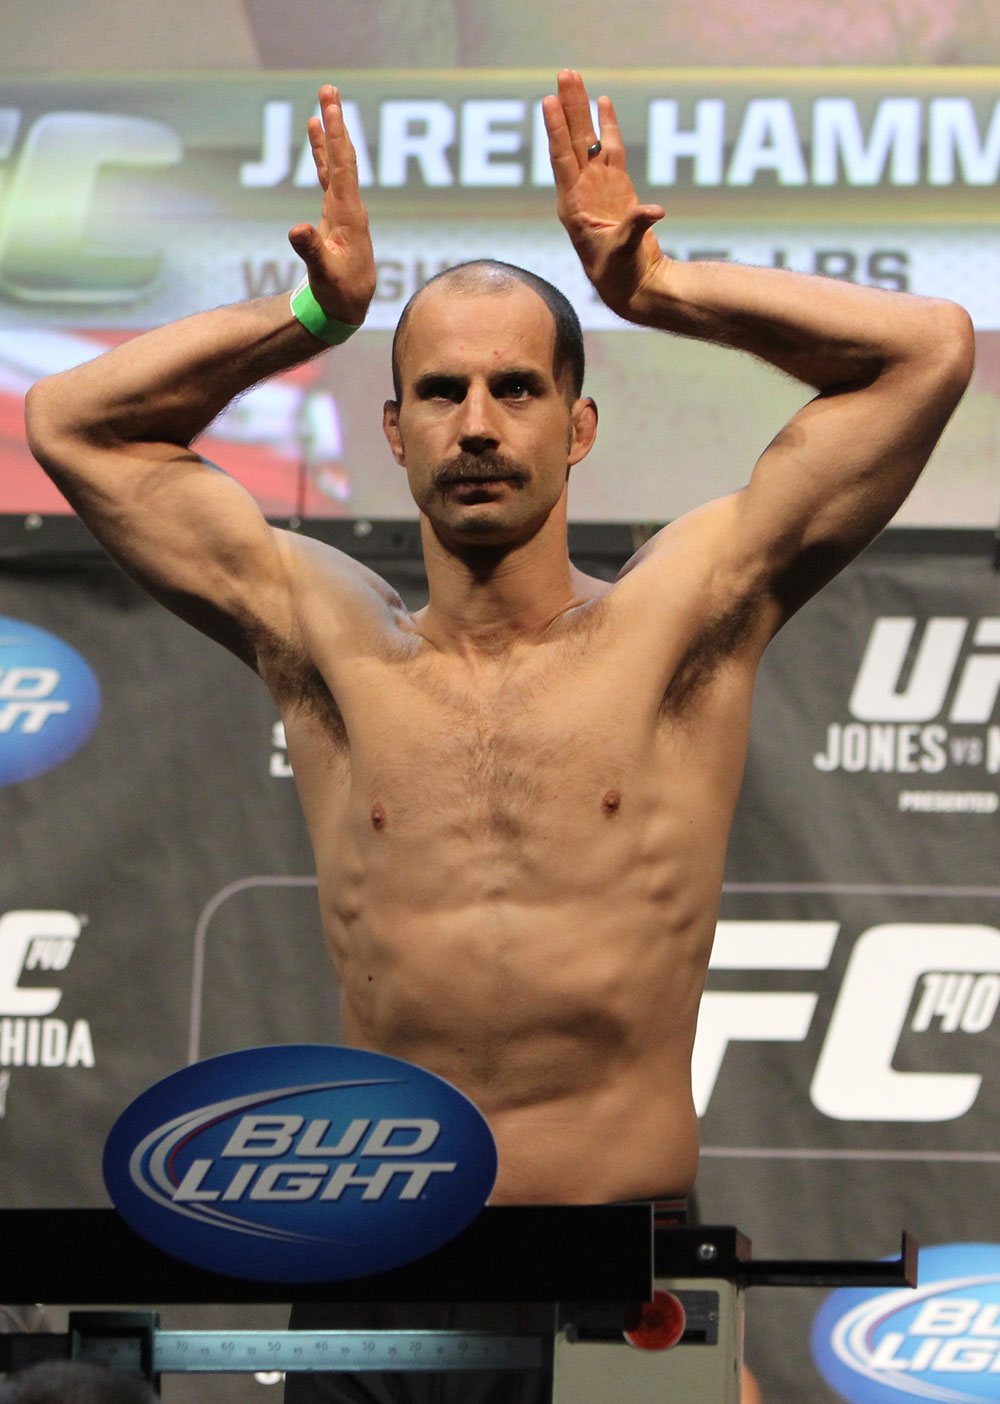 TORONTO, ON - DECEMBER 09:  Jared Hamman weighs in during the UFC 140 Official Weigh-in at the Air Canada Centre on December 9, 2011 in Toronto, Canada.  (Photo by Josh Hedges/Zuffa LLC/Zuffa LLC via Getty Images)